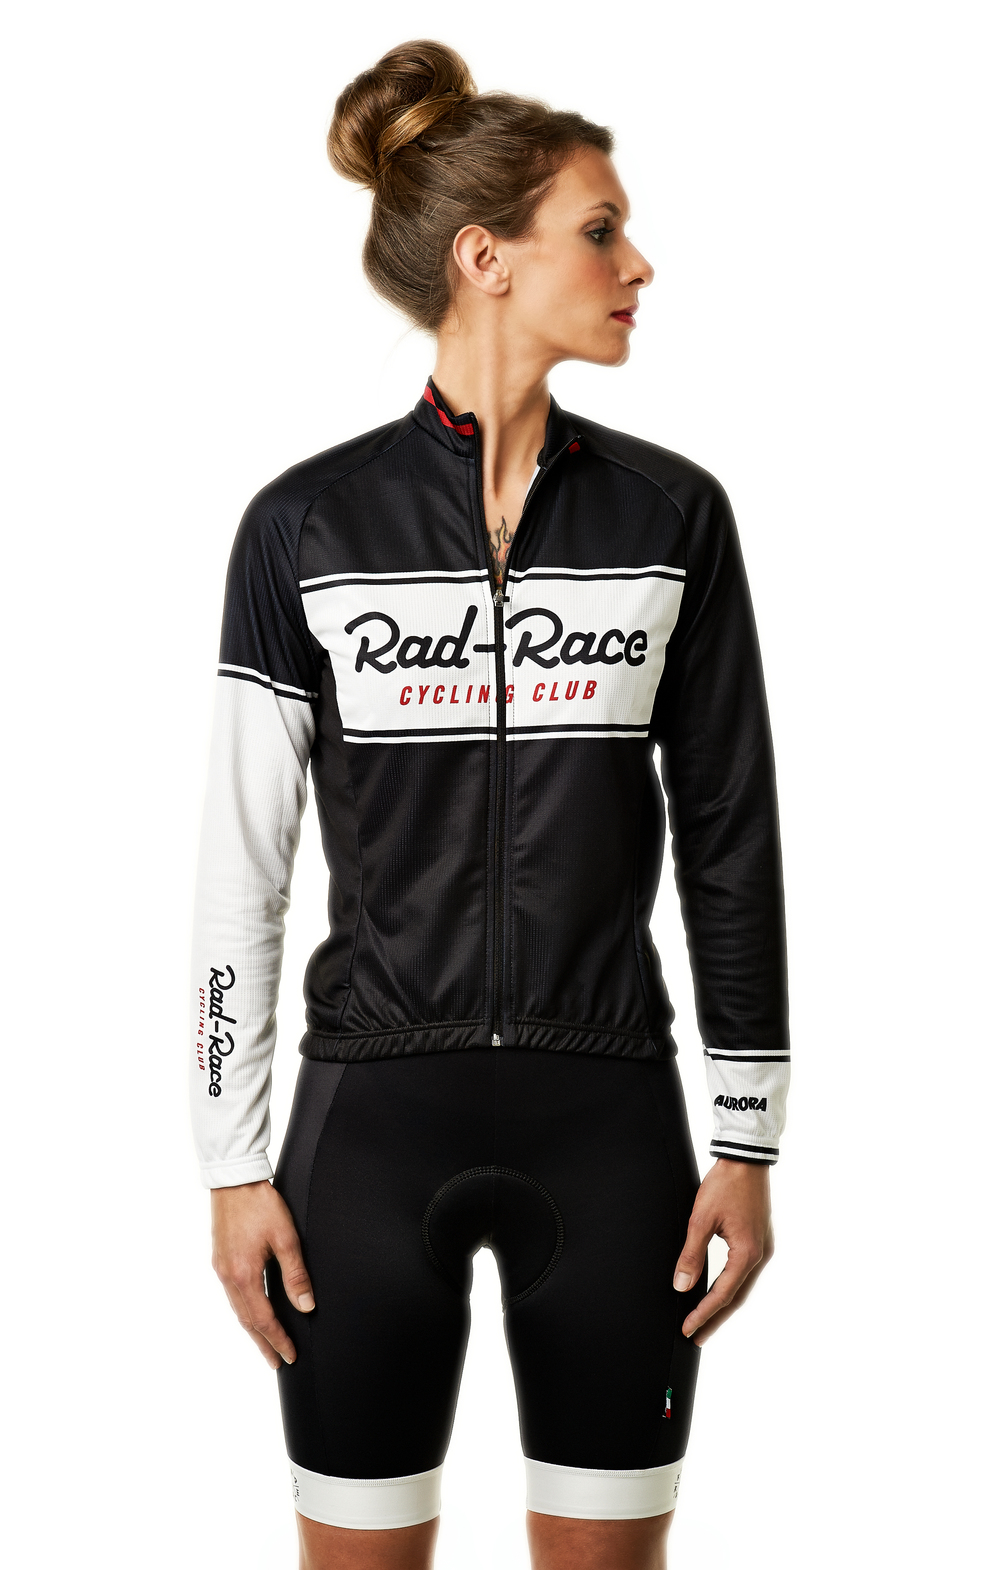 RadRaceShop_CyclingClub_14.jpg